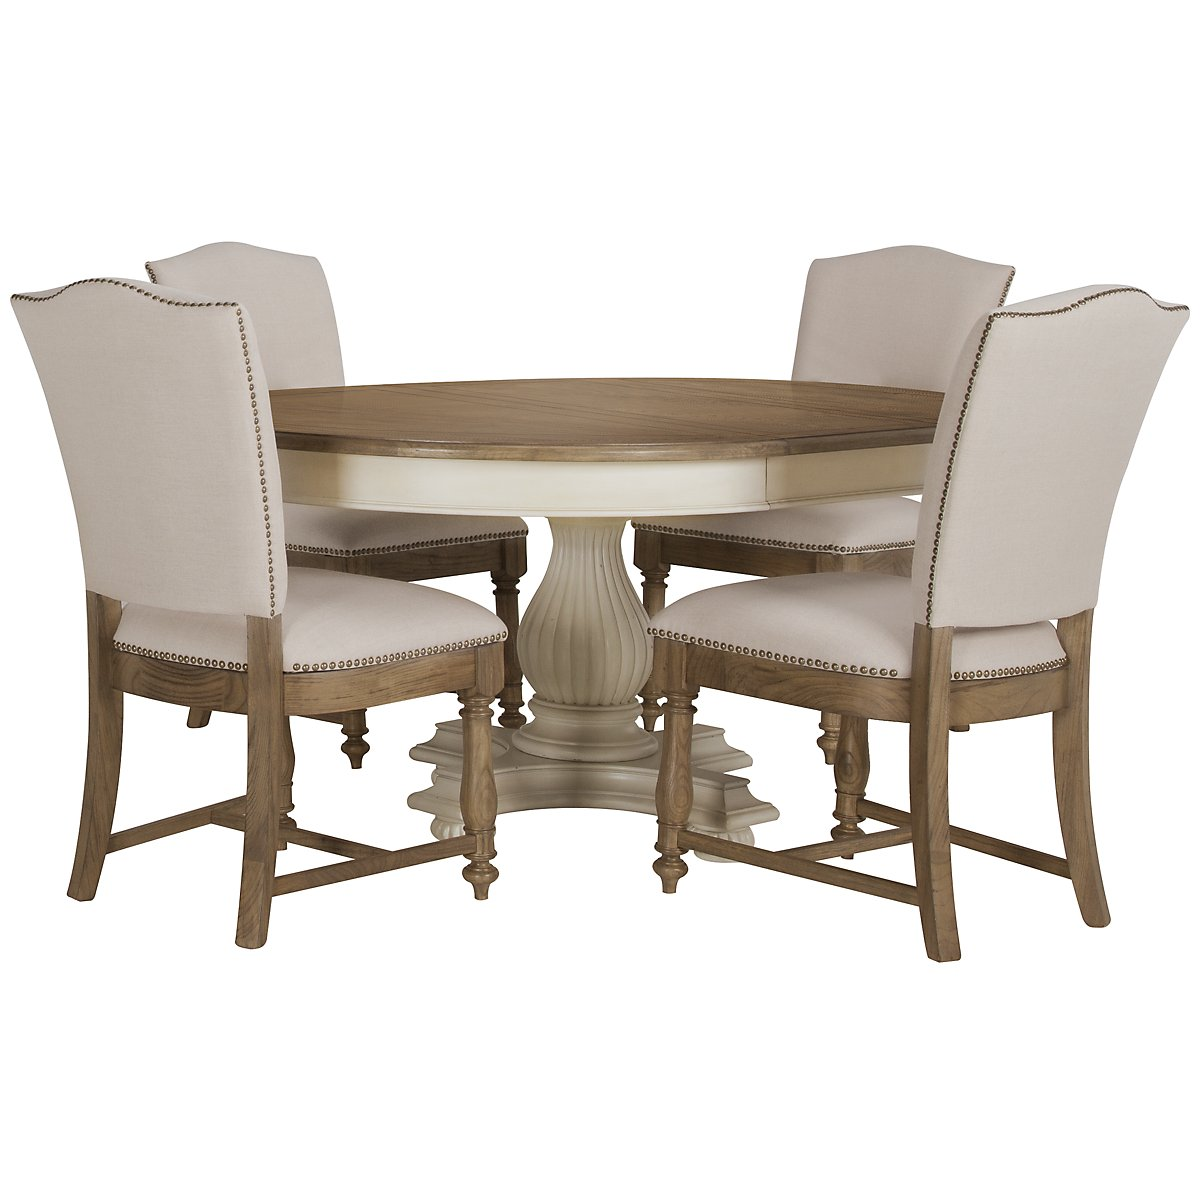 City furniture coventry two tone round table 4 for Round dining table set for 4